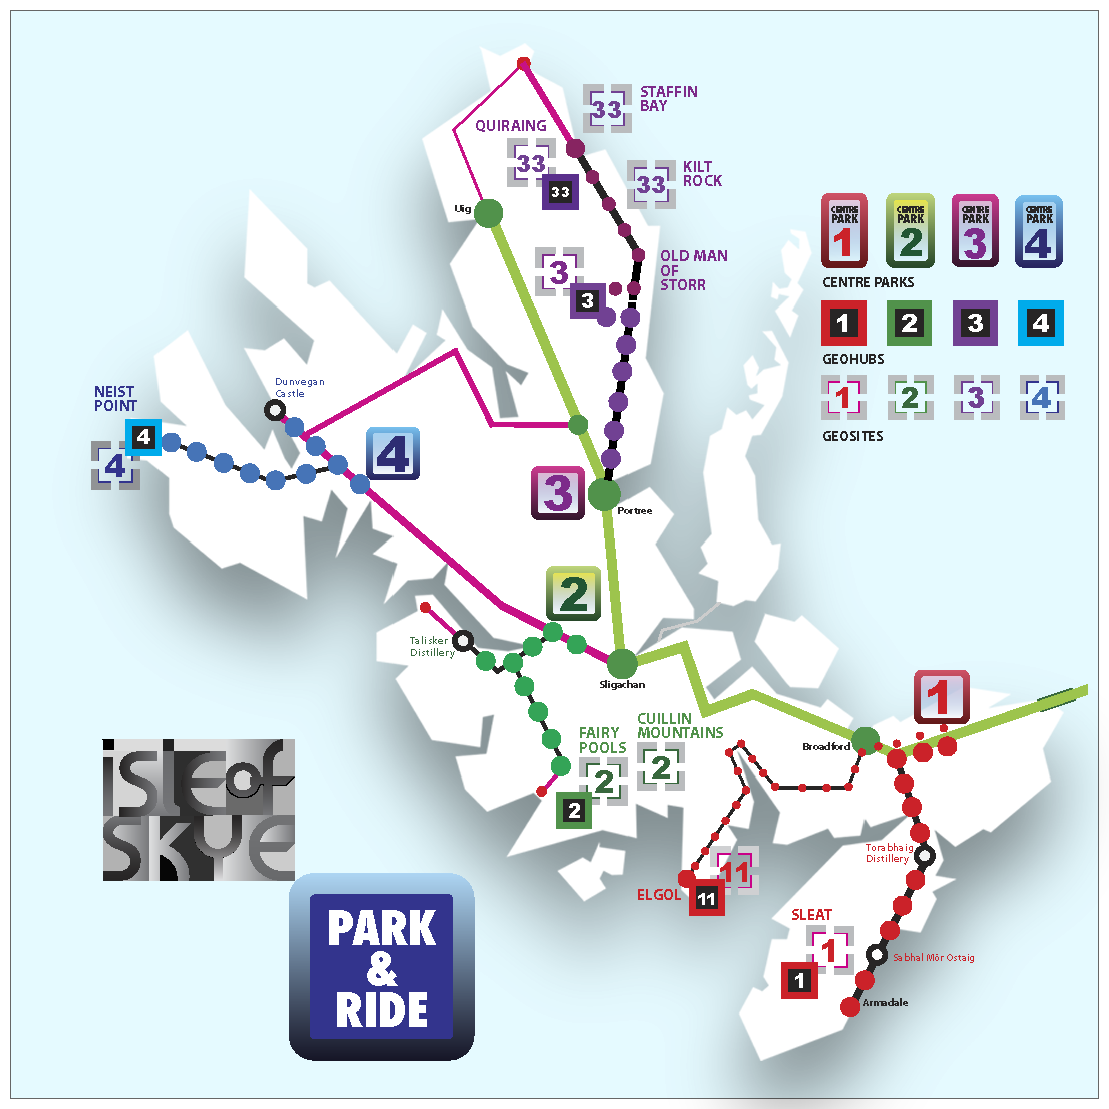 Geo-park and ride scheme proposed